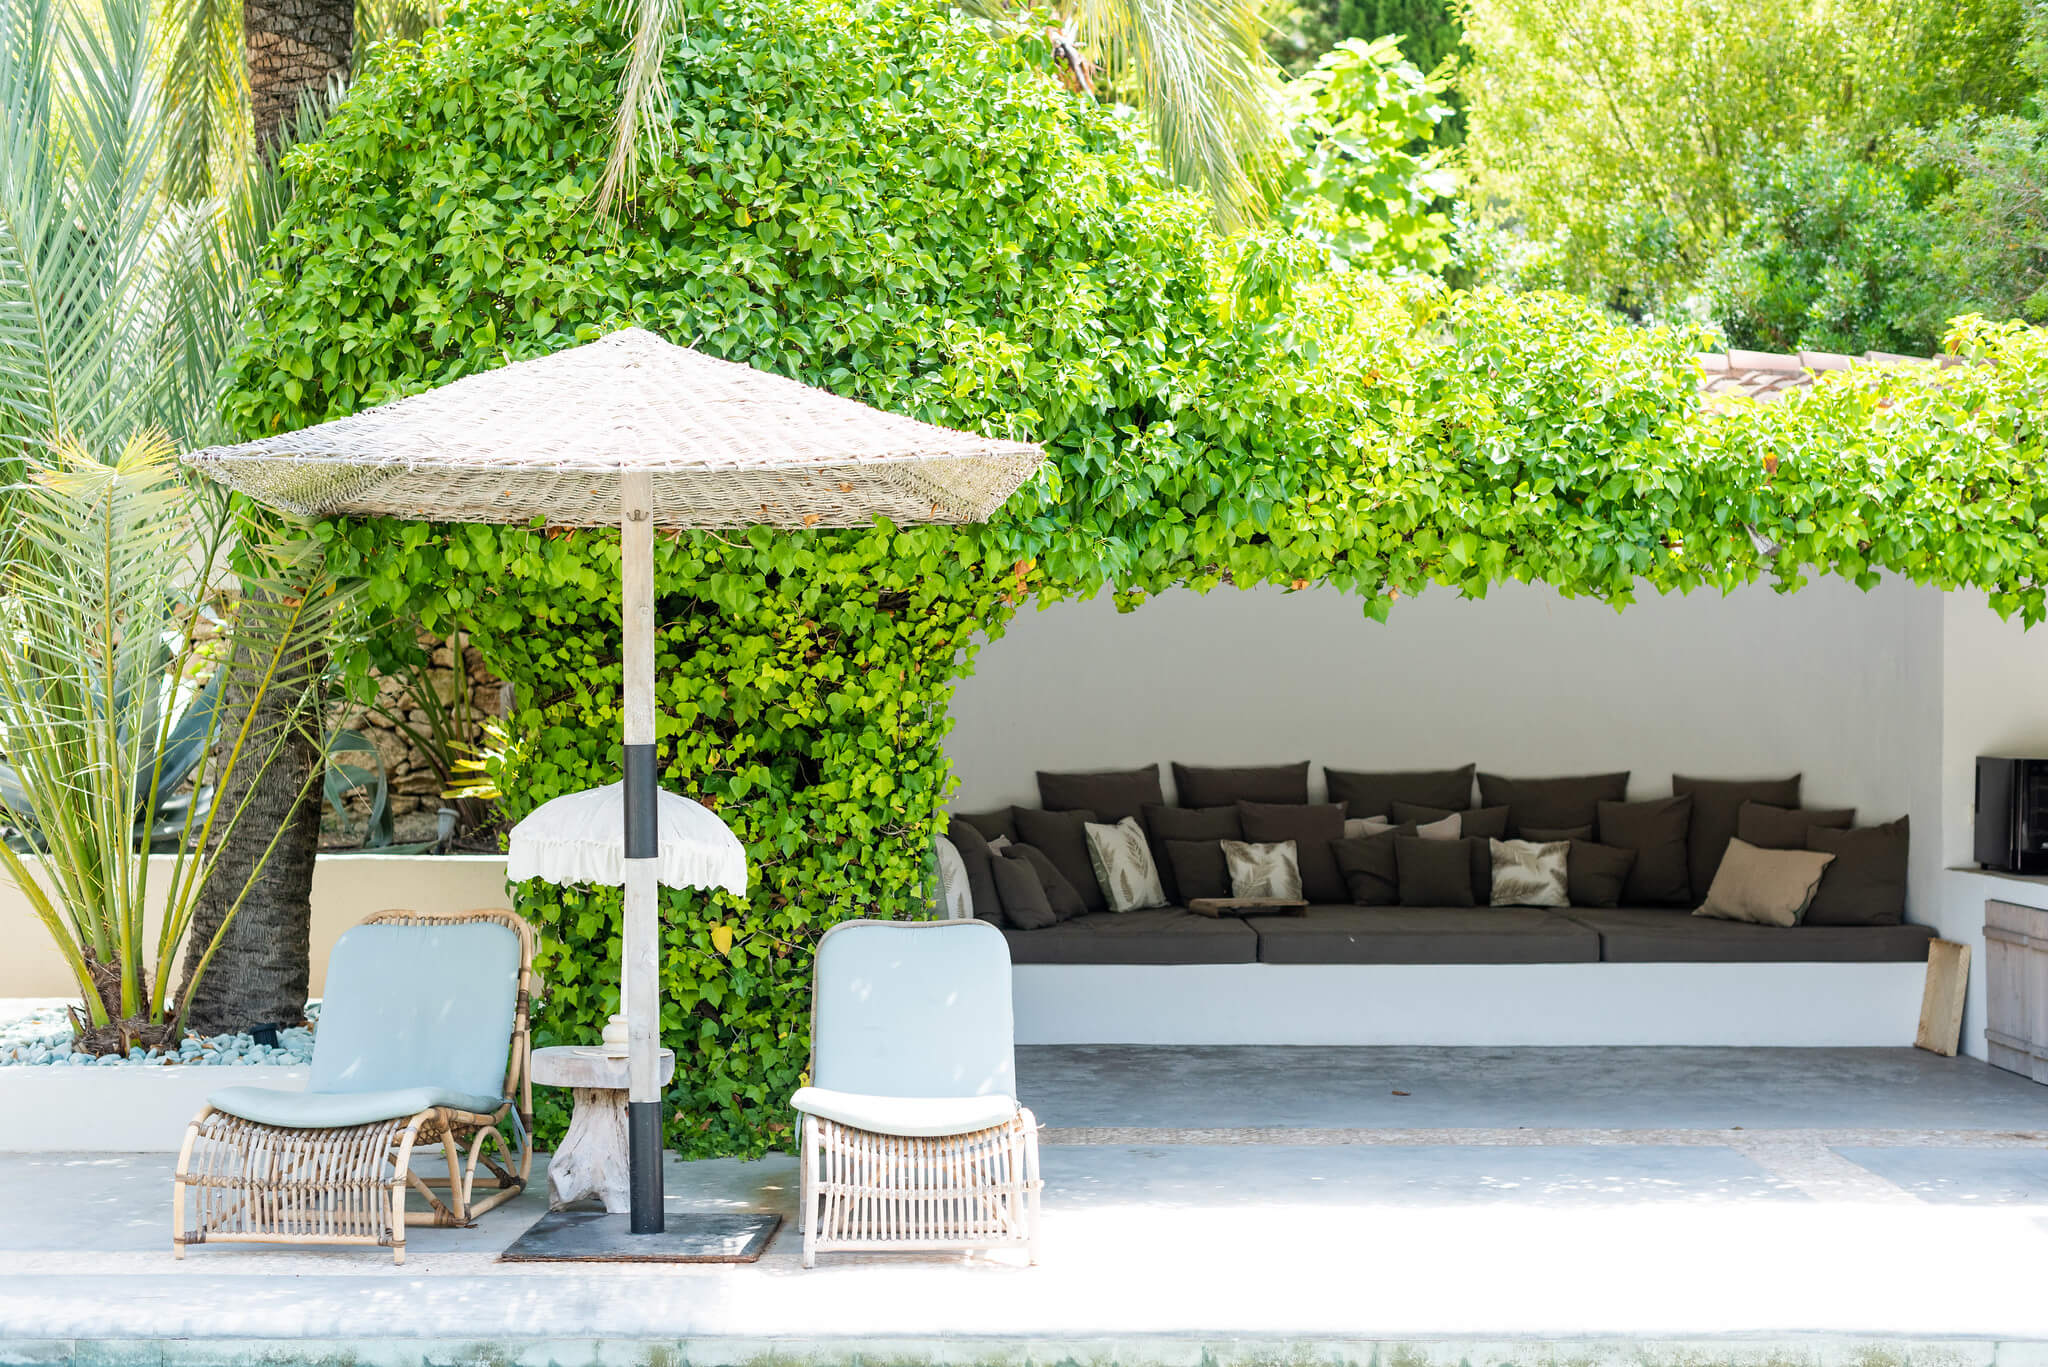 https://www.white-ibiza.com/wp-content/uploads/2020/05/white-ibiza-villas-can-riviere-exterior-shaded-seating.jpg